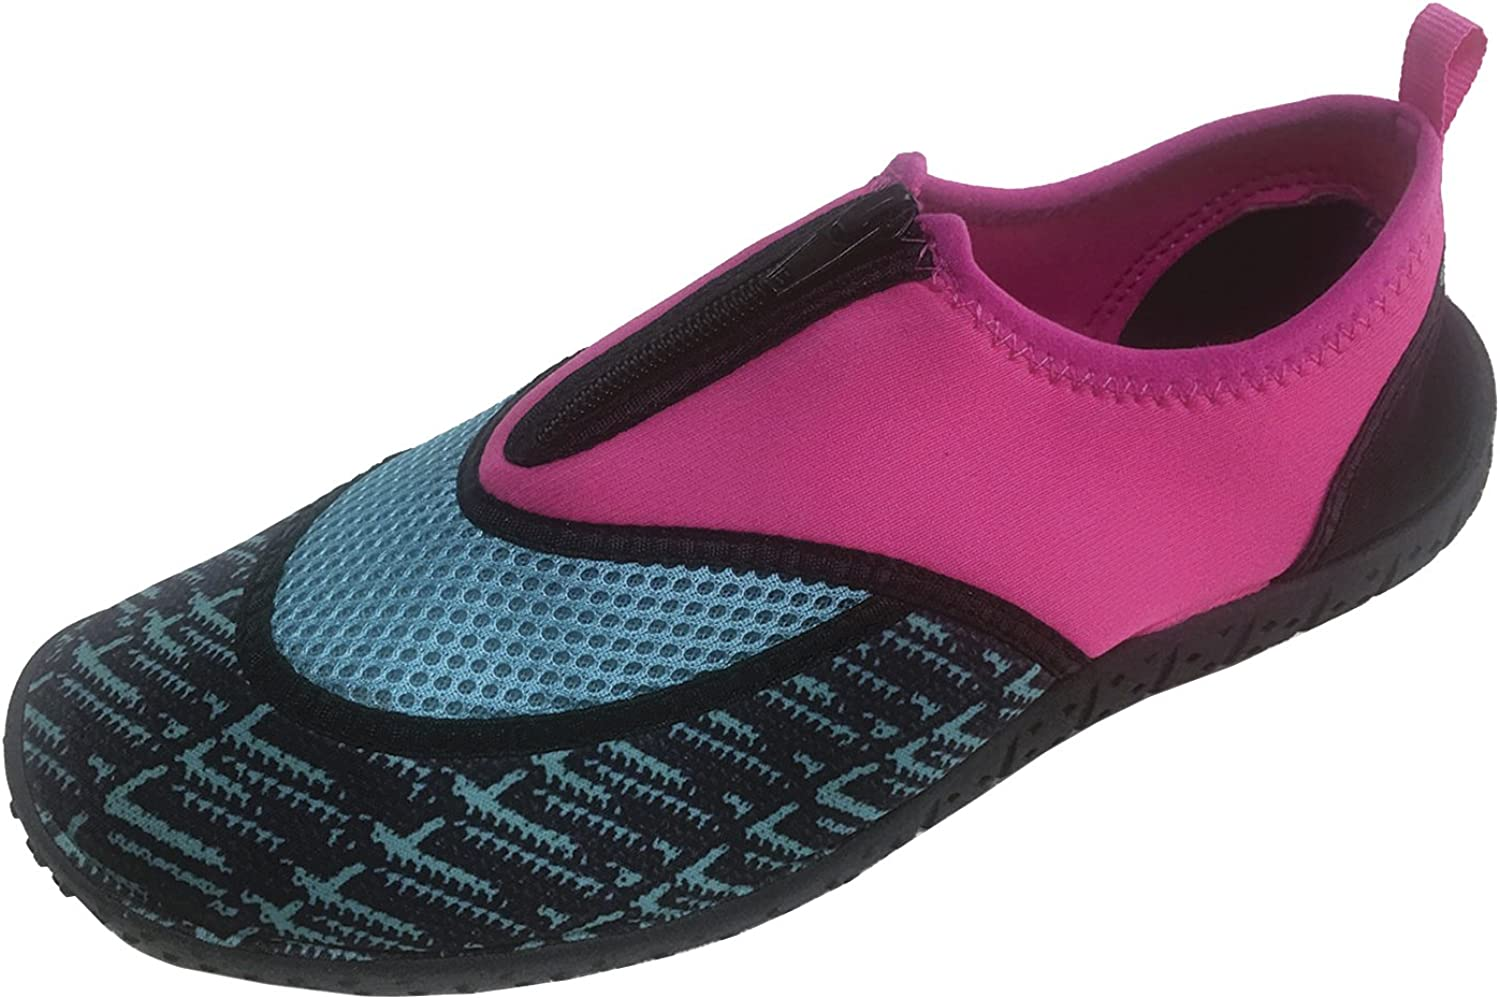 Cambridge Select Women's Slip-on Closed Toe Zipper Quick Dry Mesh Non-Slip Water shoes